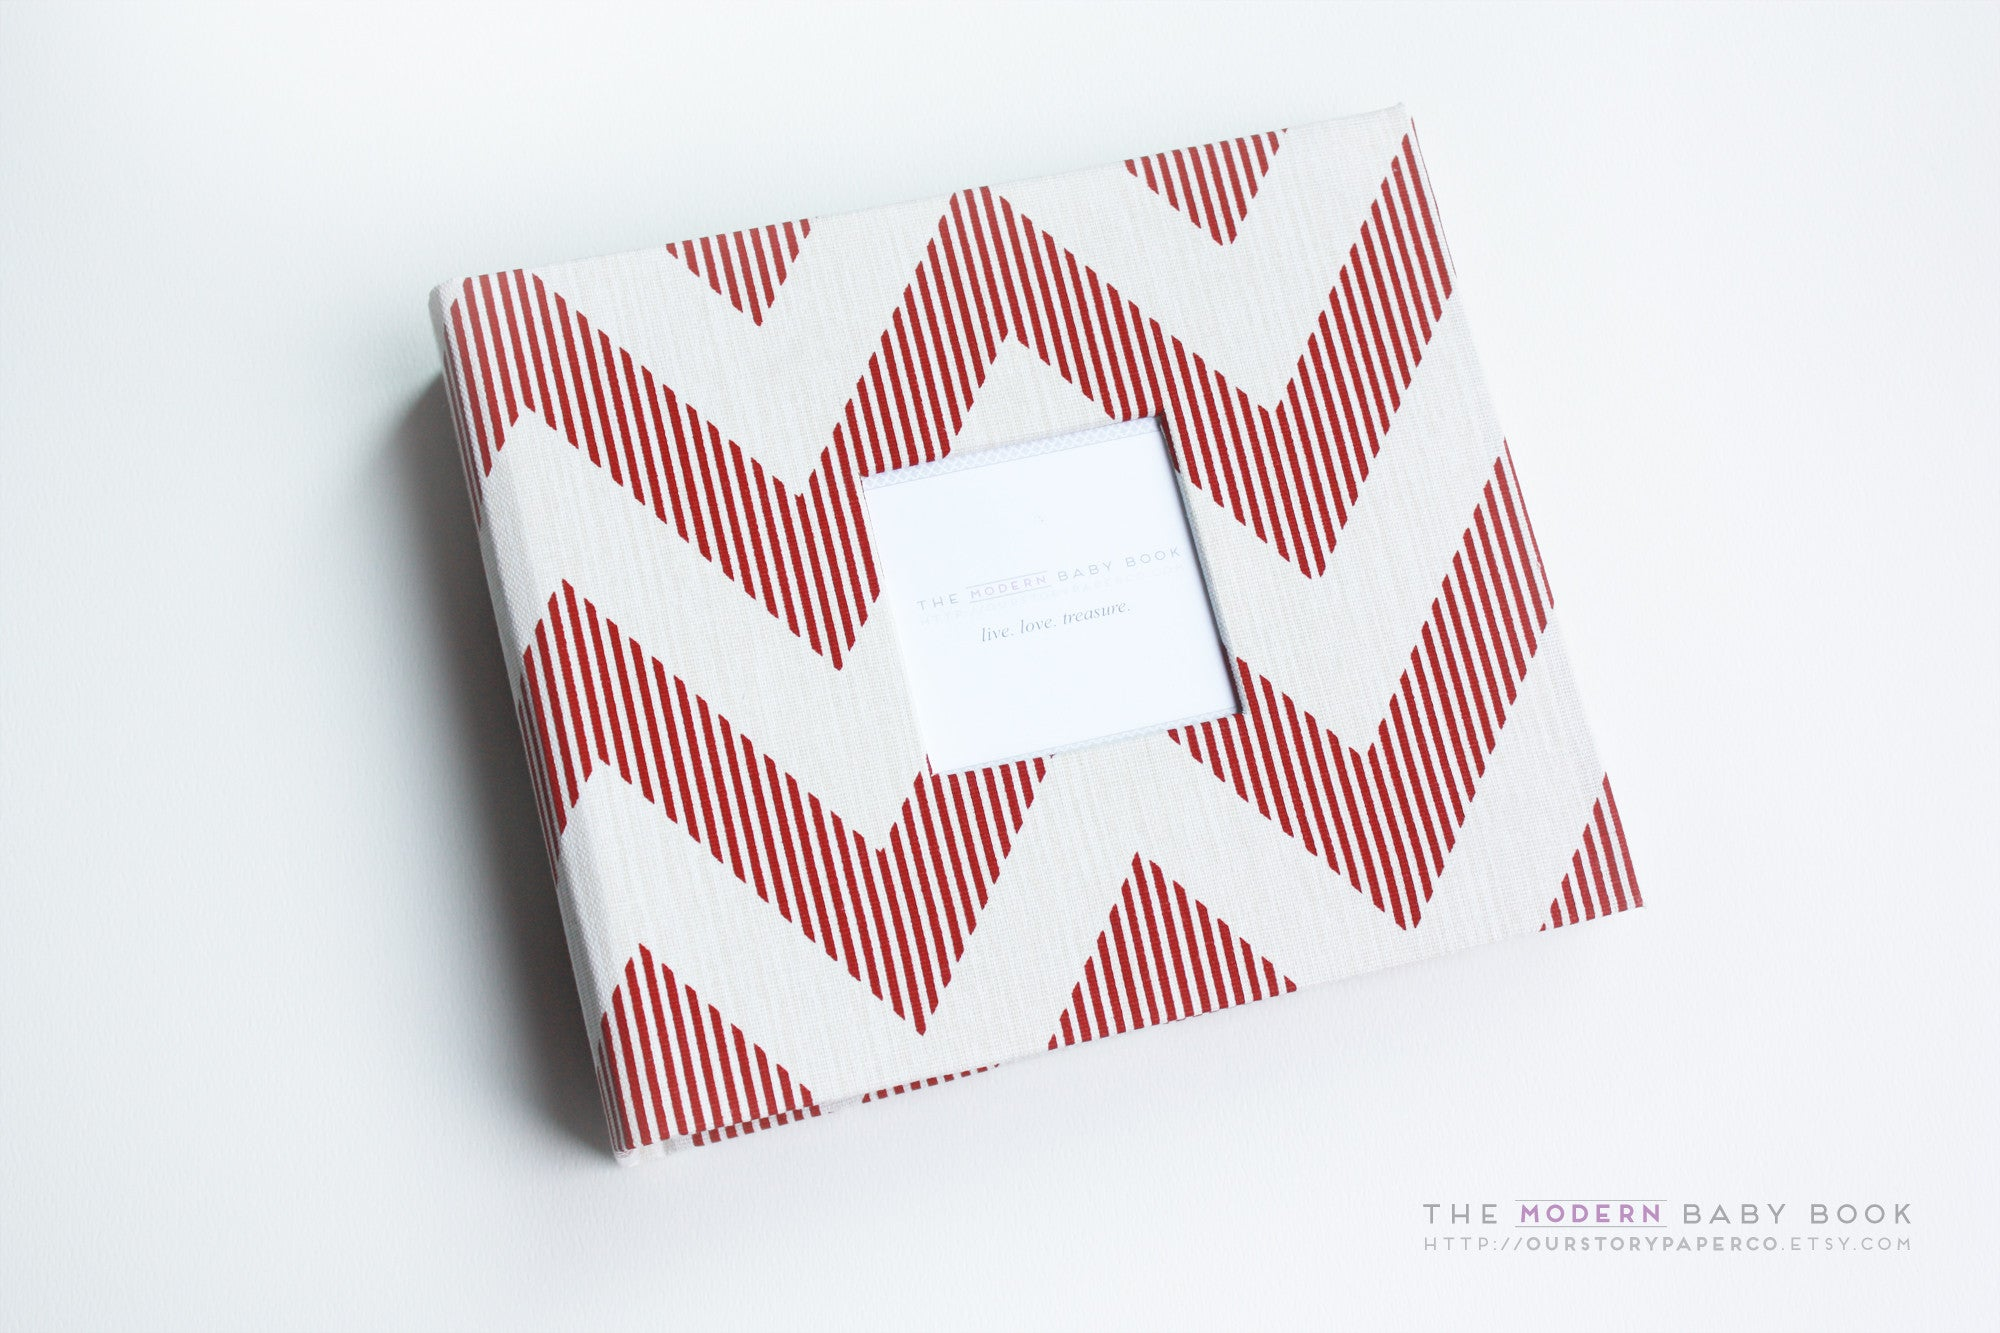 Red Chevy Chevron Modern Baby Book - Our Story Paper Co.